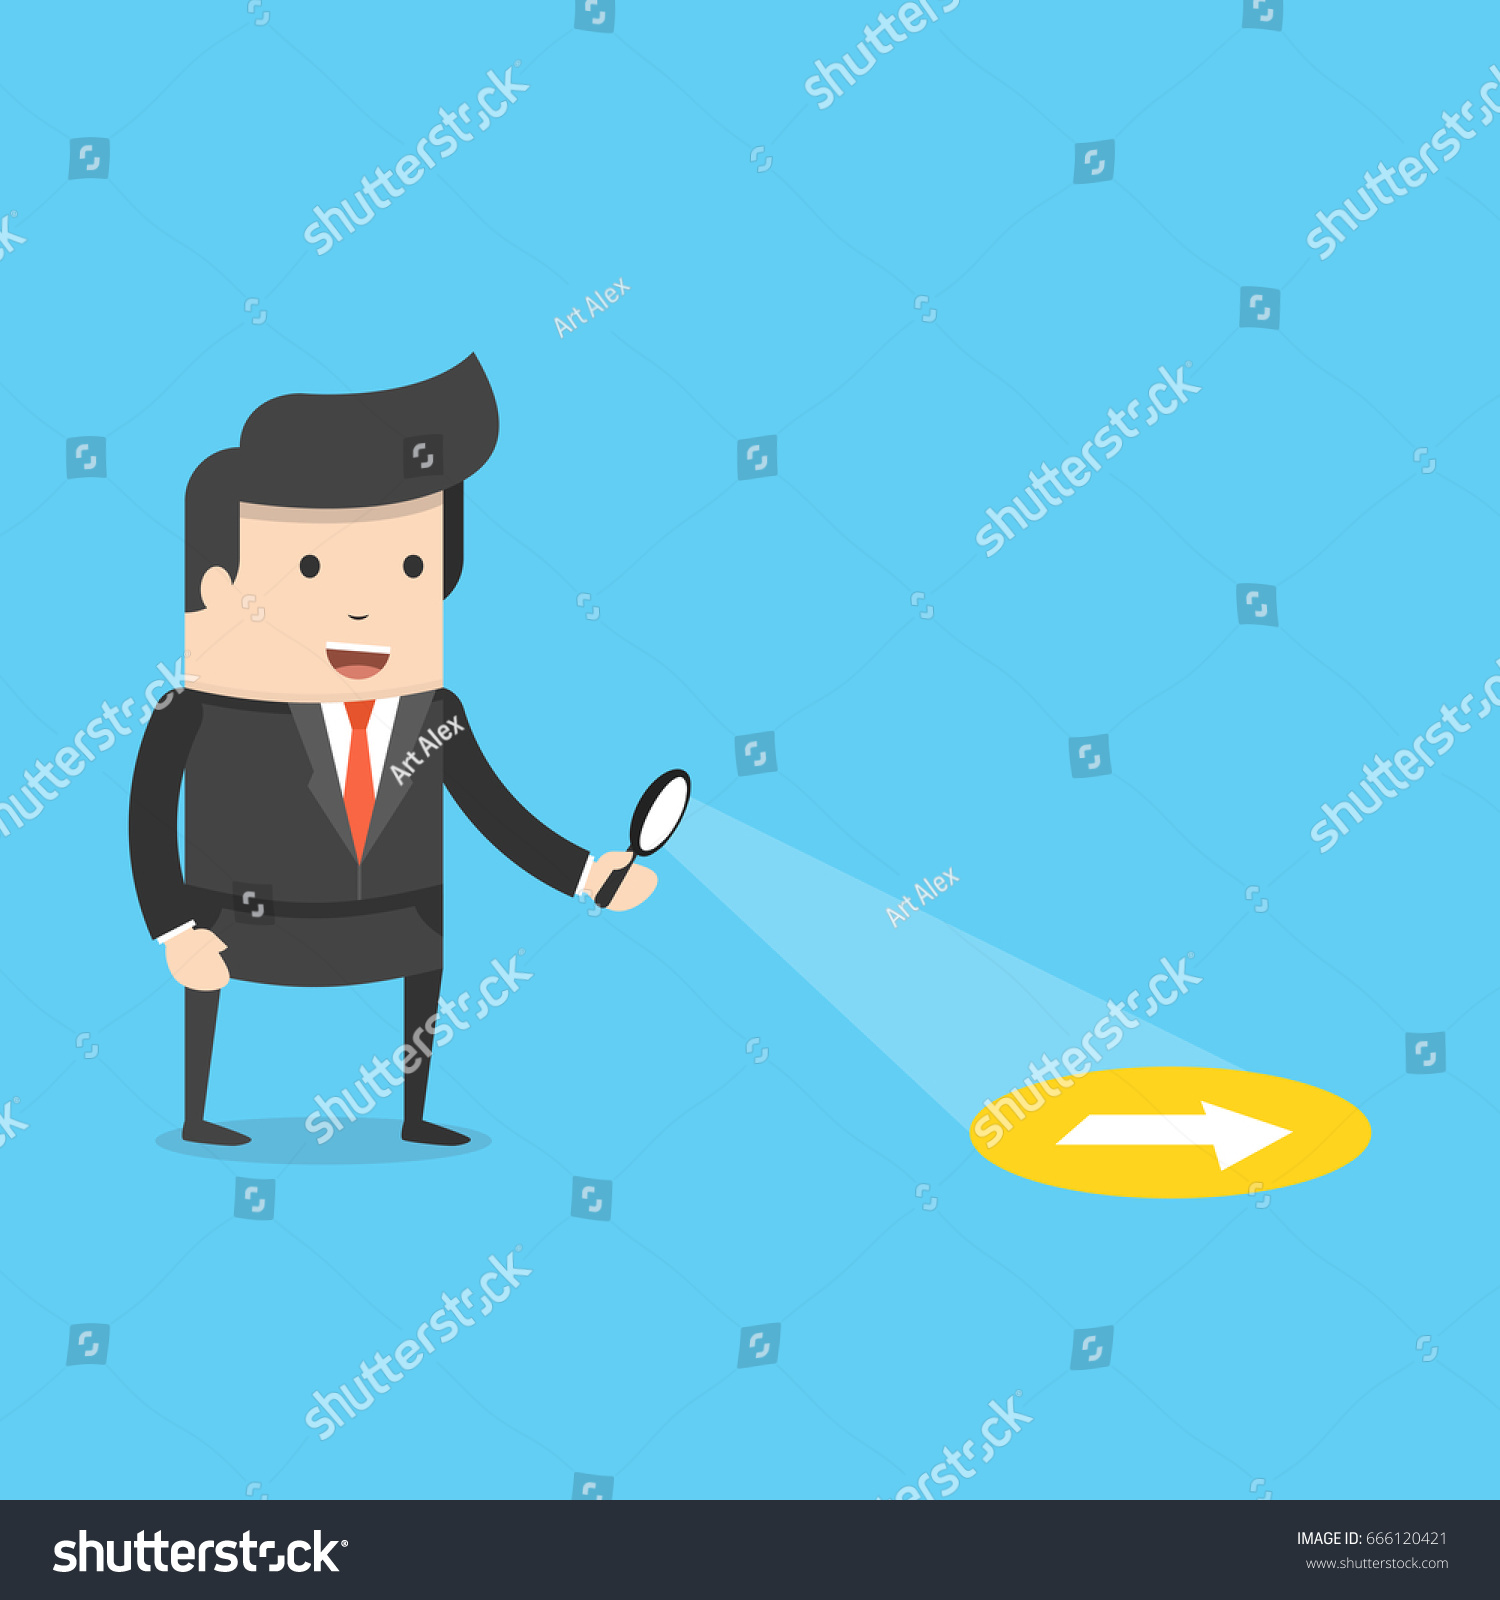 businessman searching through magnifying glass searching stock